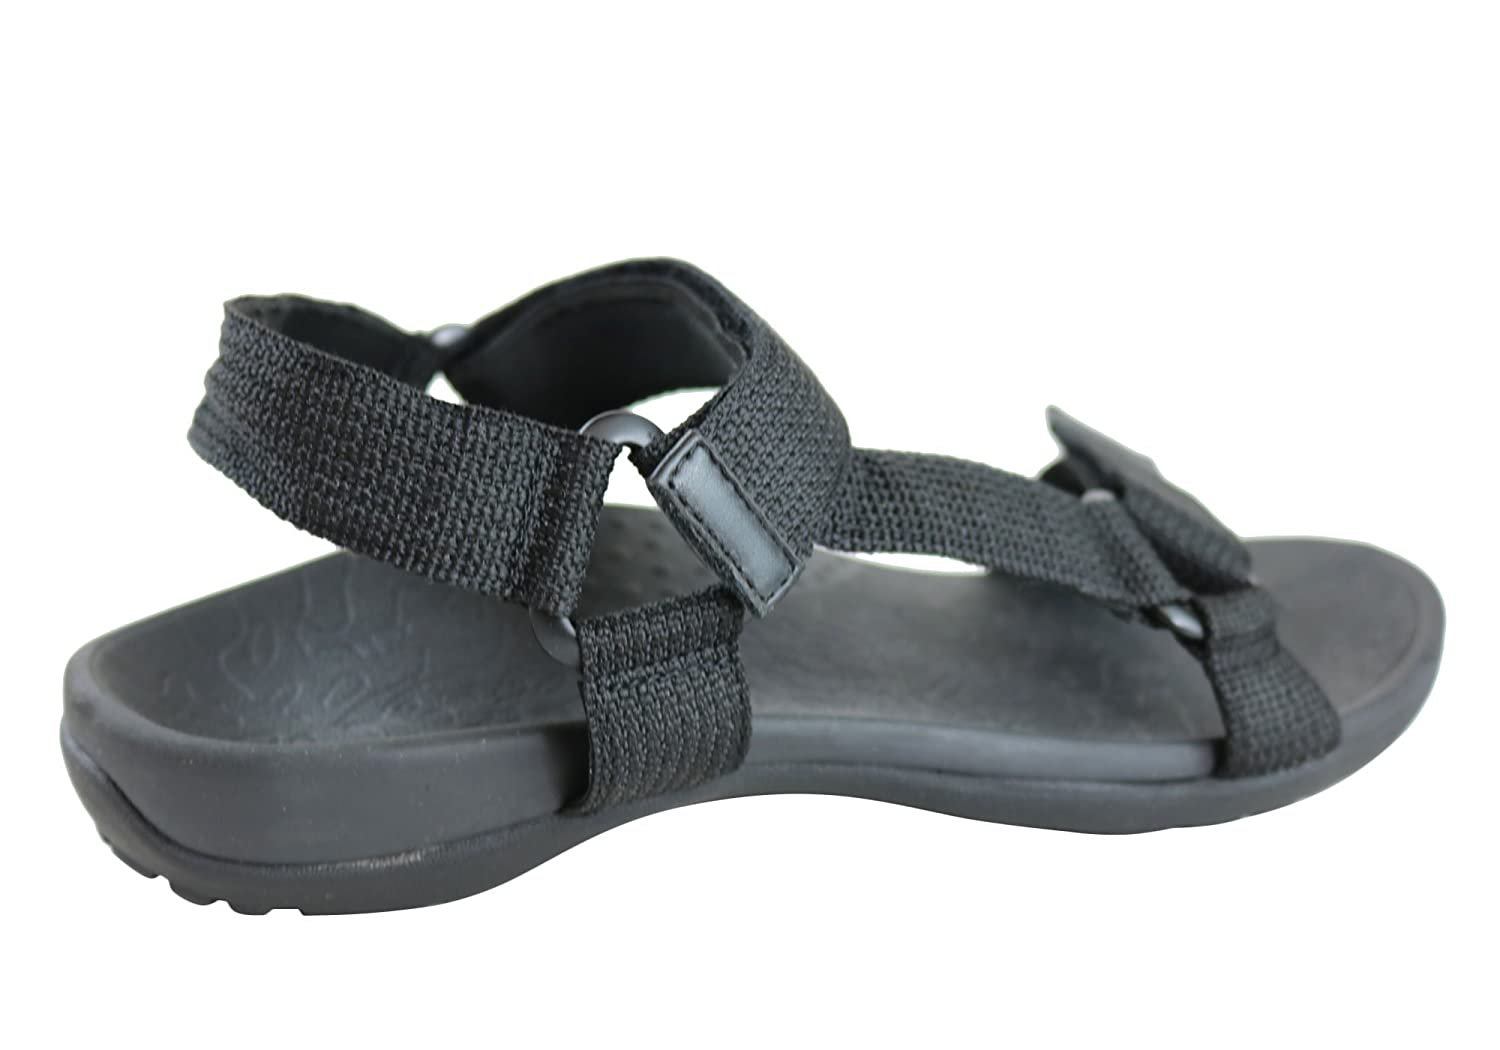 40ad19b3c767 Axign Viva Sandal Womens Comfortable Supportive Orthotic Sandals - Size  10  US Womens or 41 EUR - Color  Black  Amazon.com.au  Fashion